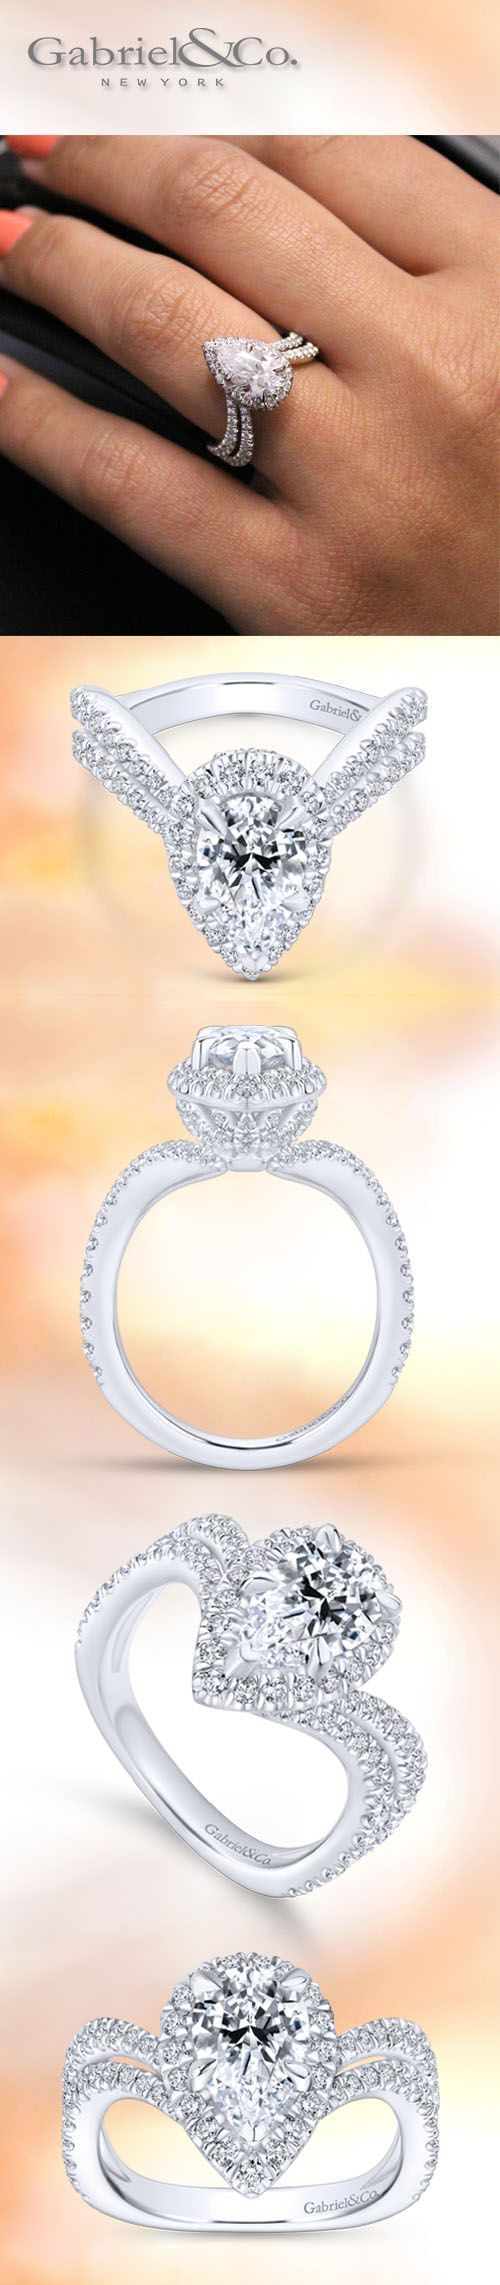 Gabriel & Co. - Voted #1 Most Preferred Bridal Brand. A modern design for a classic Marquise Diamond Halo 18k White Gold Engagement Ring.Style: ER13661P6W84JJ